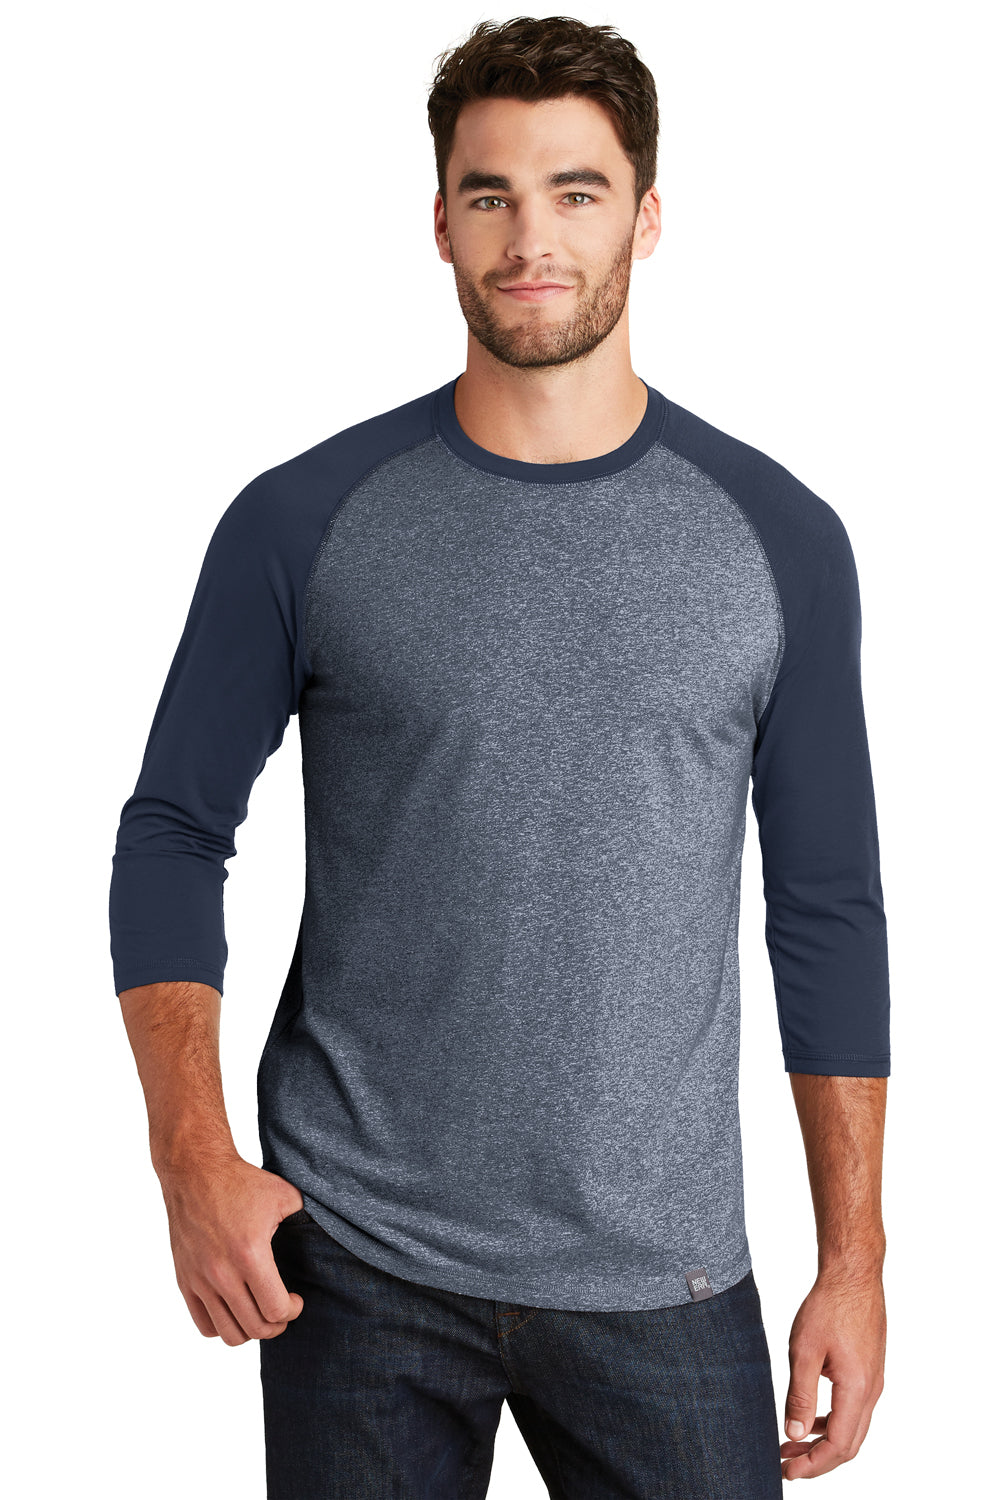 New Era NEA104 Mens Heritage 3/4 Sleeve Crewneck T-Shirt Navy Blue/Navy Blue Twist Front